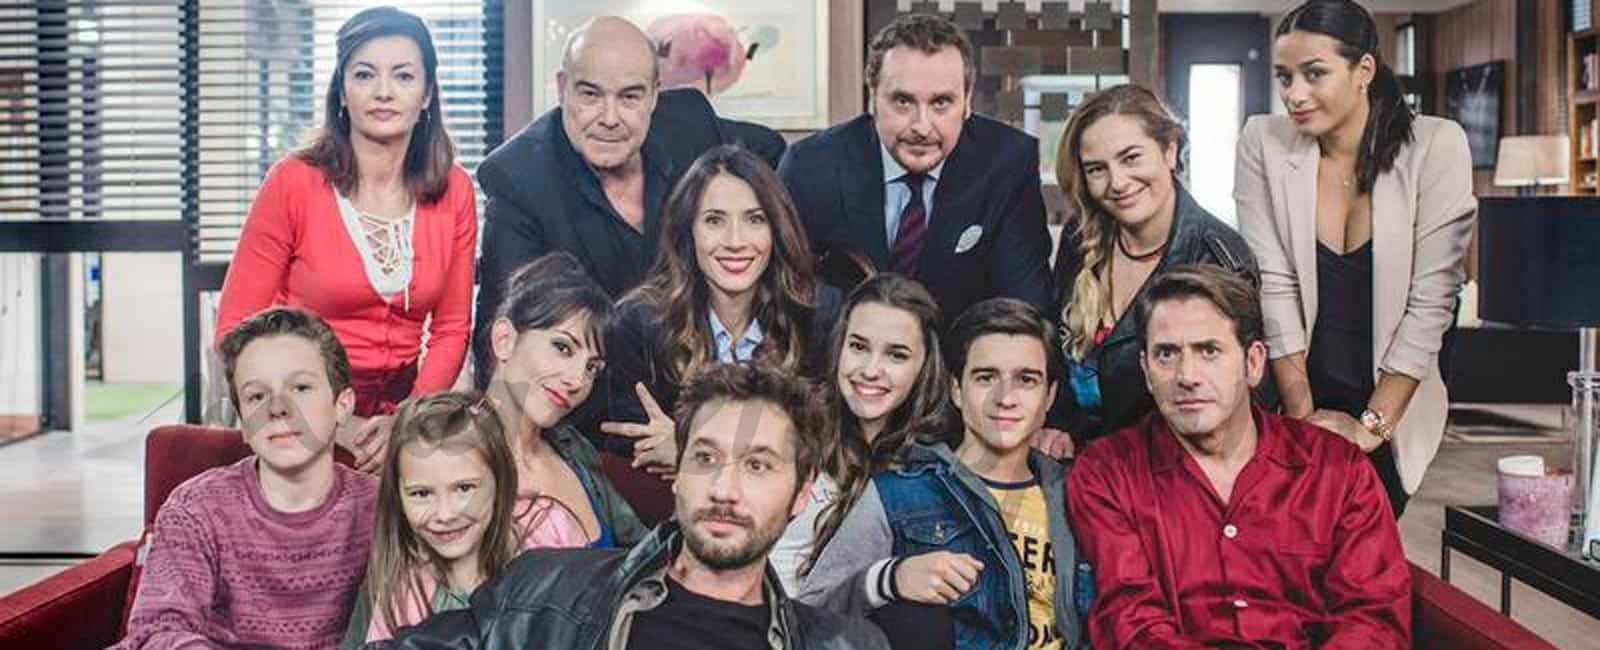 'iFamily', la nueva comedia familiar de RTVE